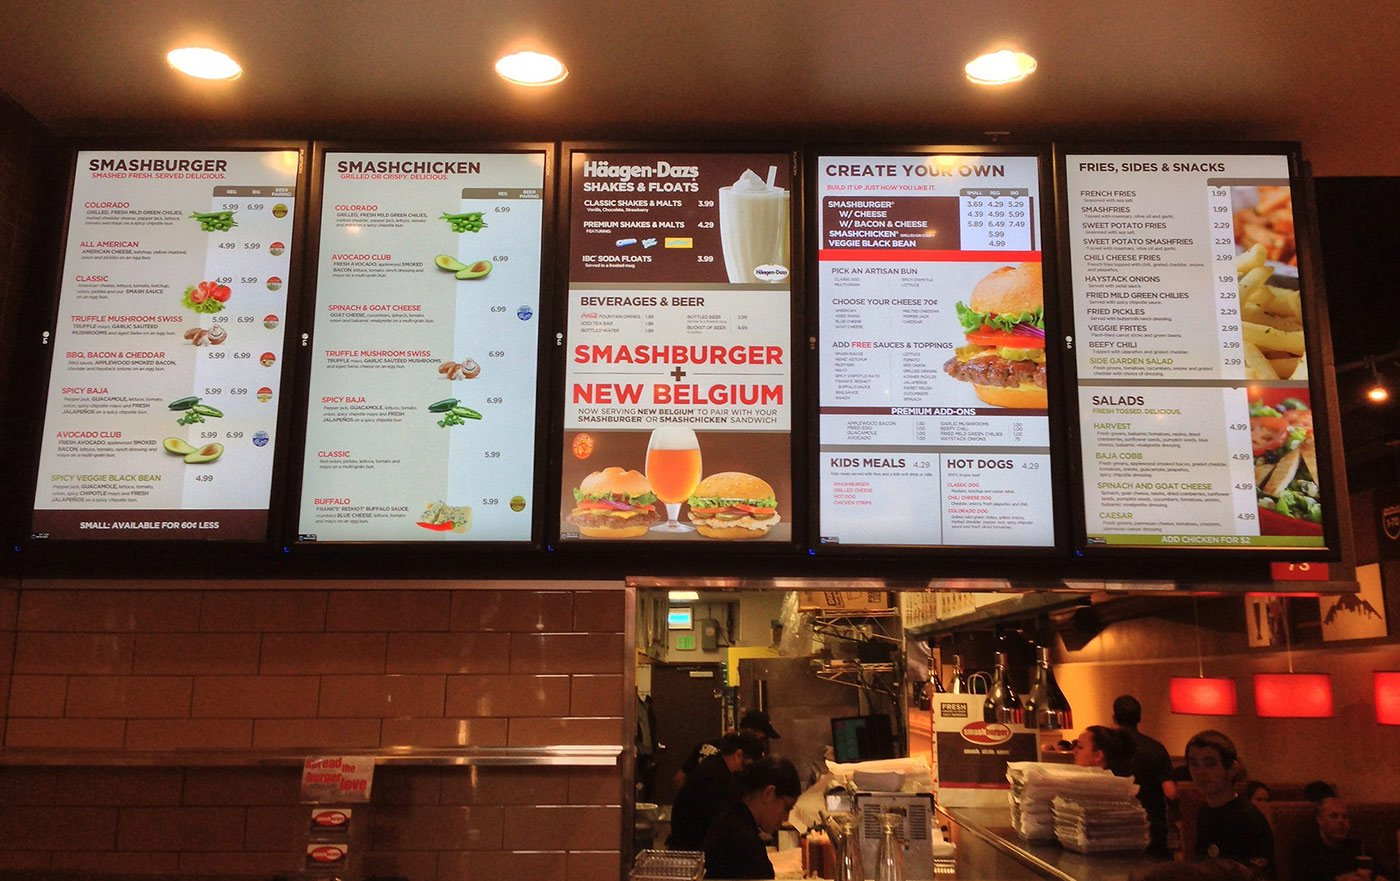 Excellent Restaurant Digital Signage